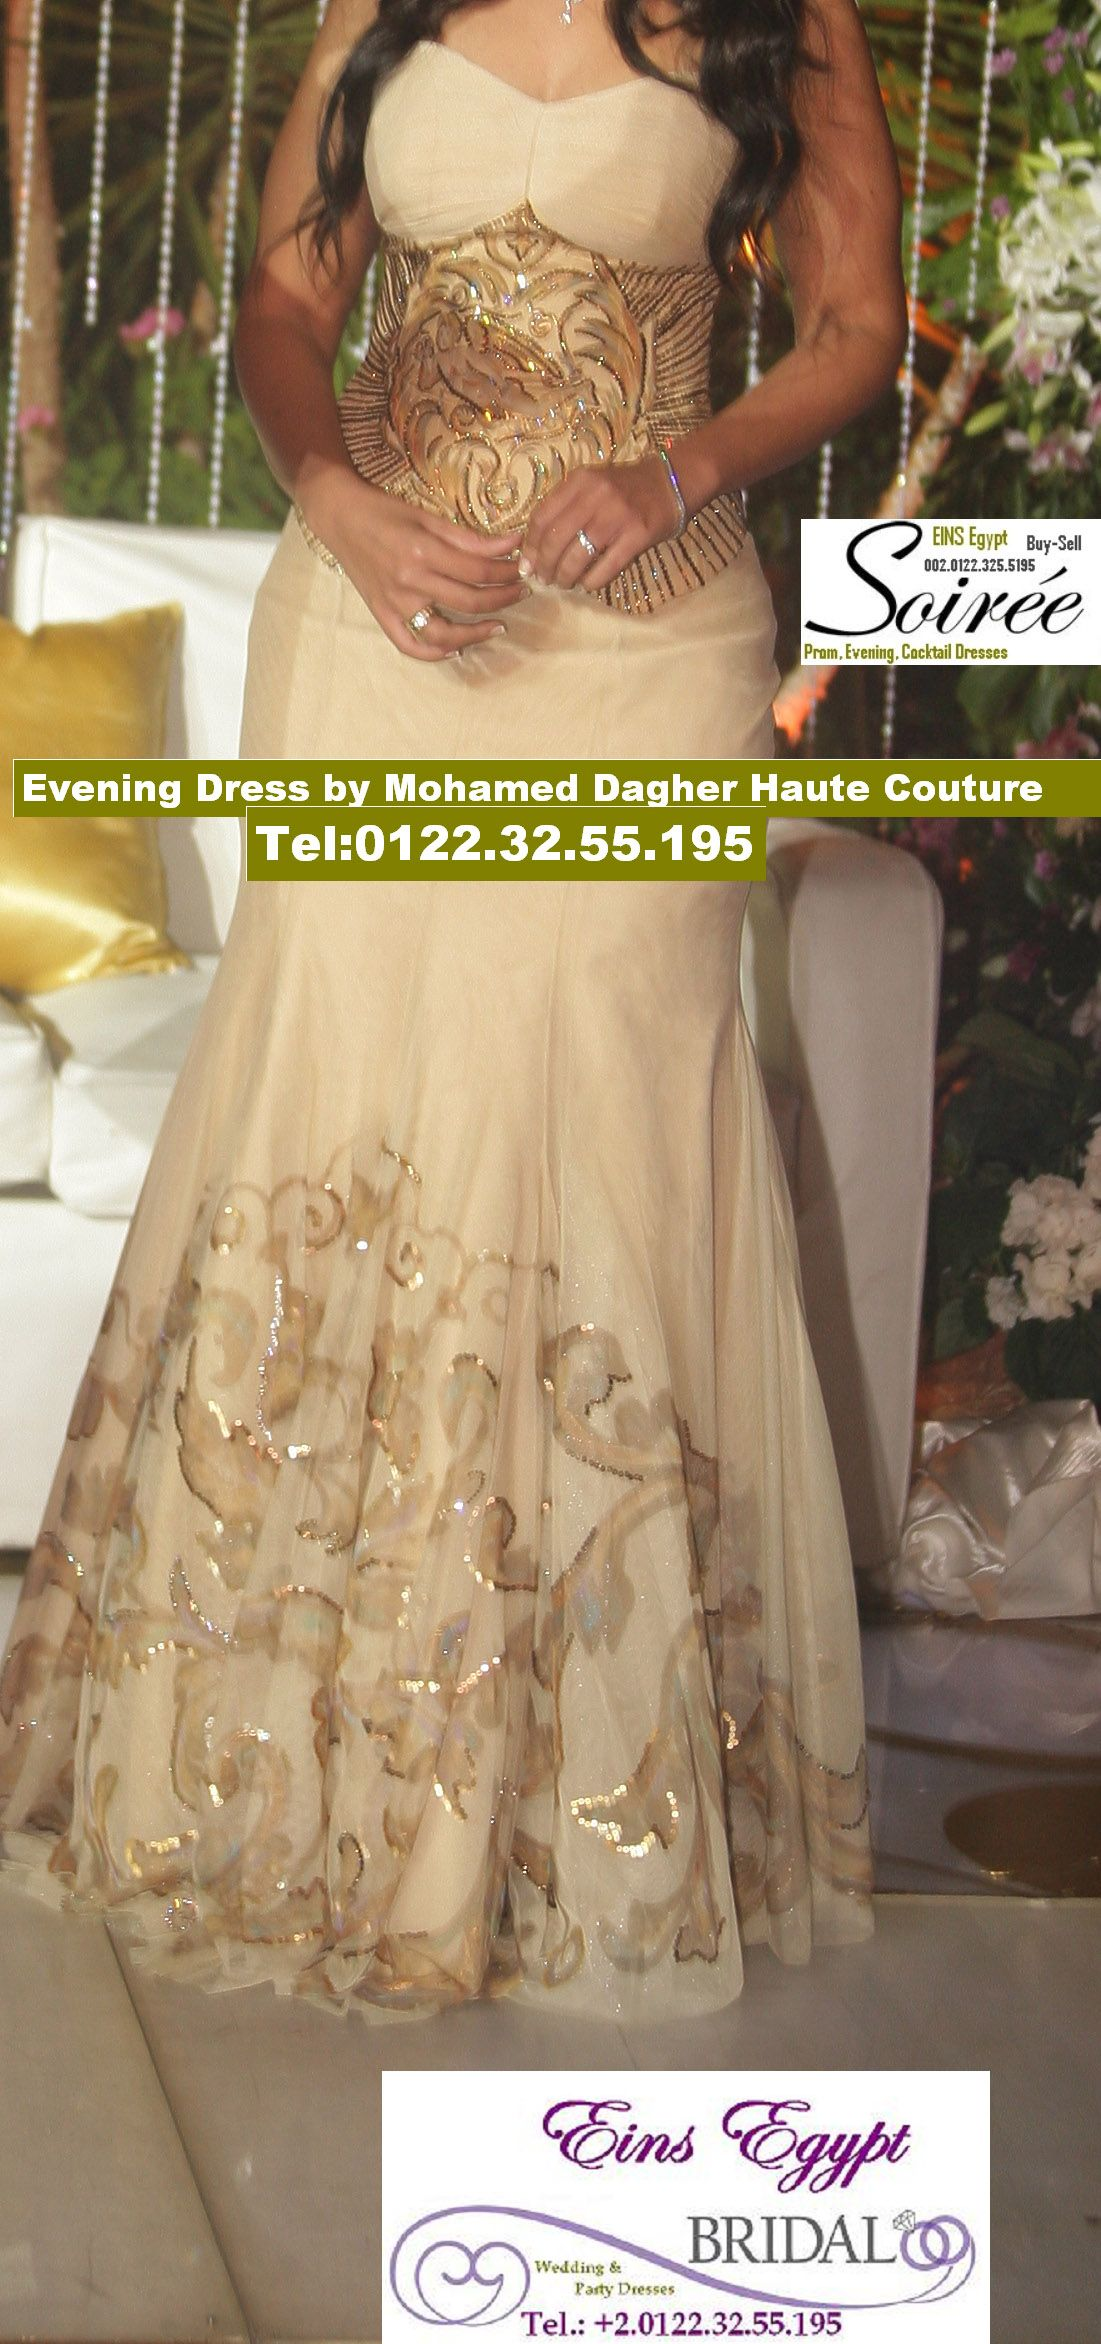 egyptian wedding dresses Egypt Wedding Dress Sell Buy Once